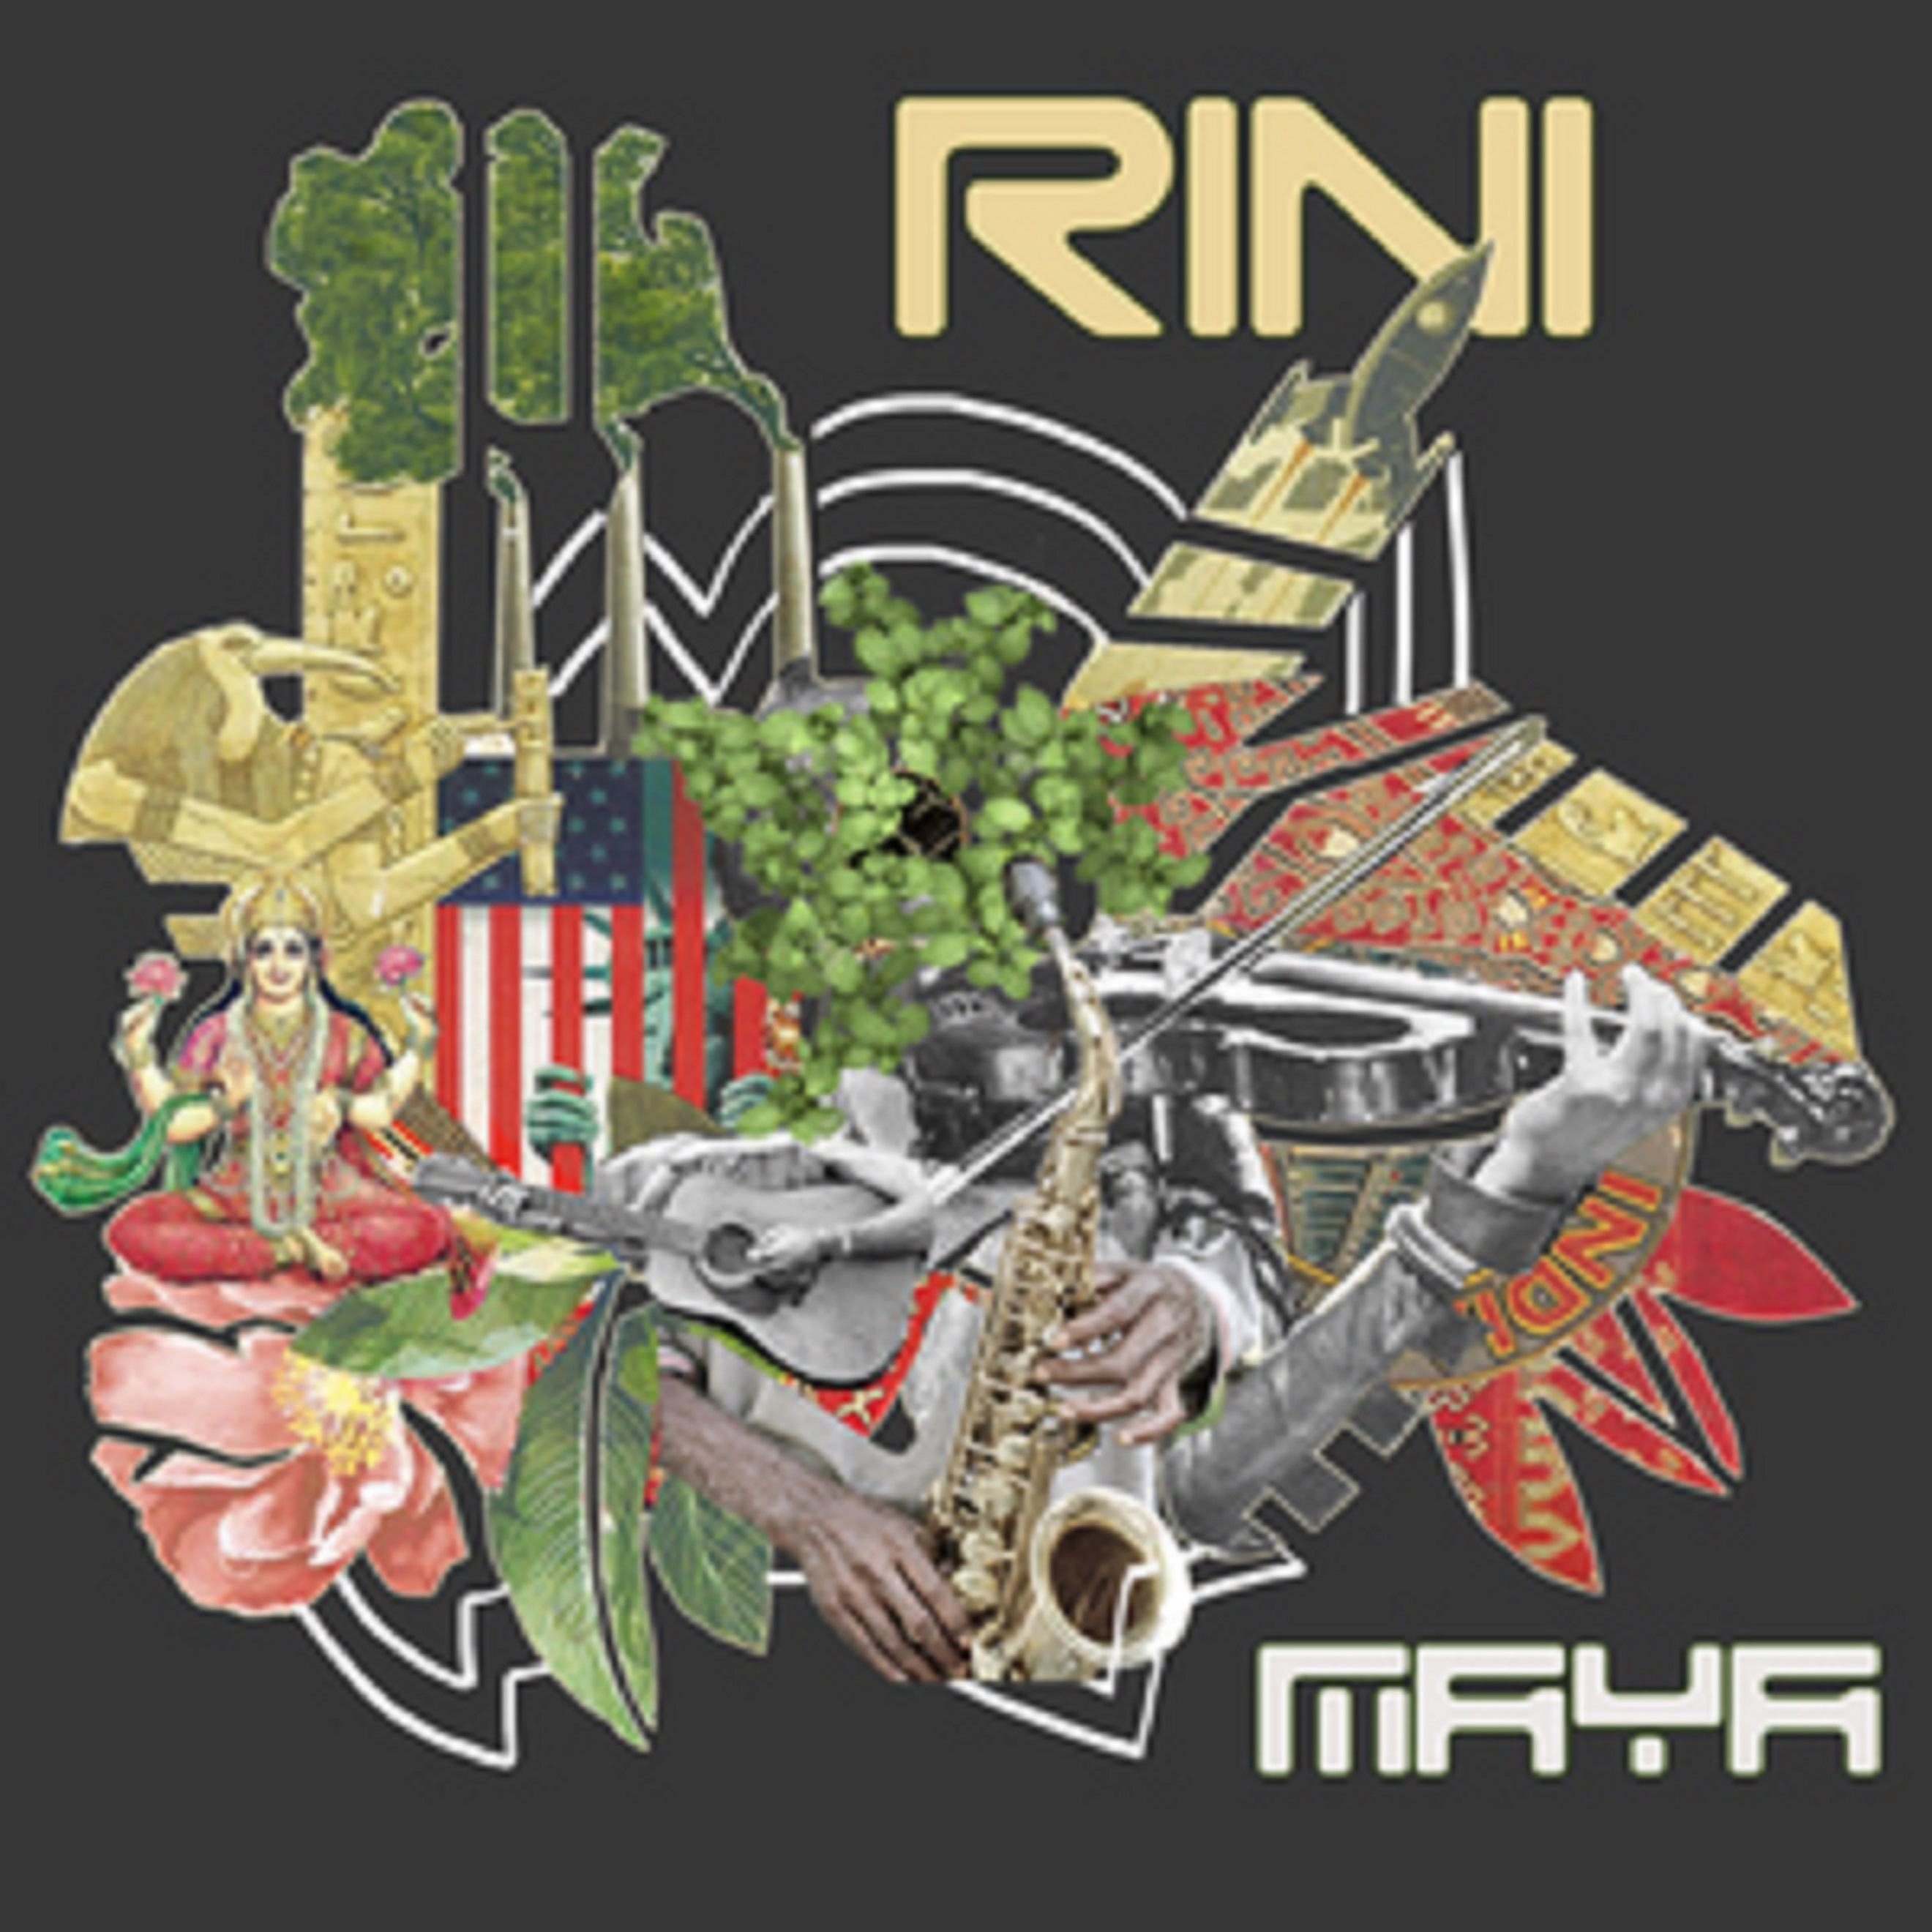 The Funky Musical Cosmos of Carnatic-Meets-Electronic Group RINI